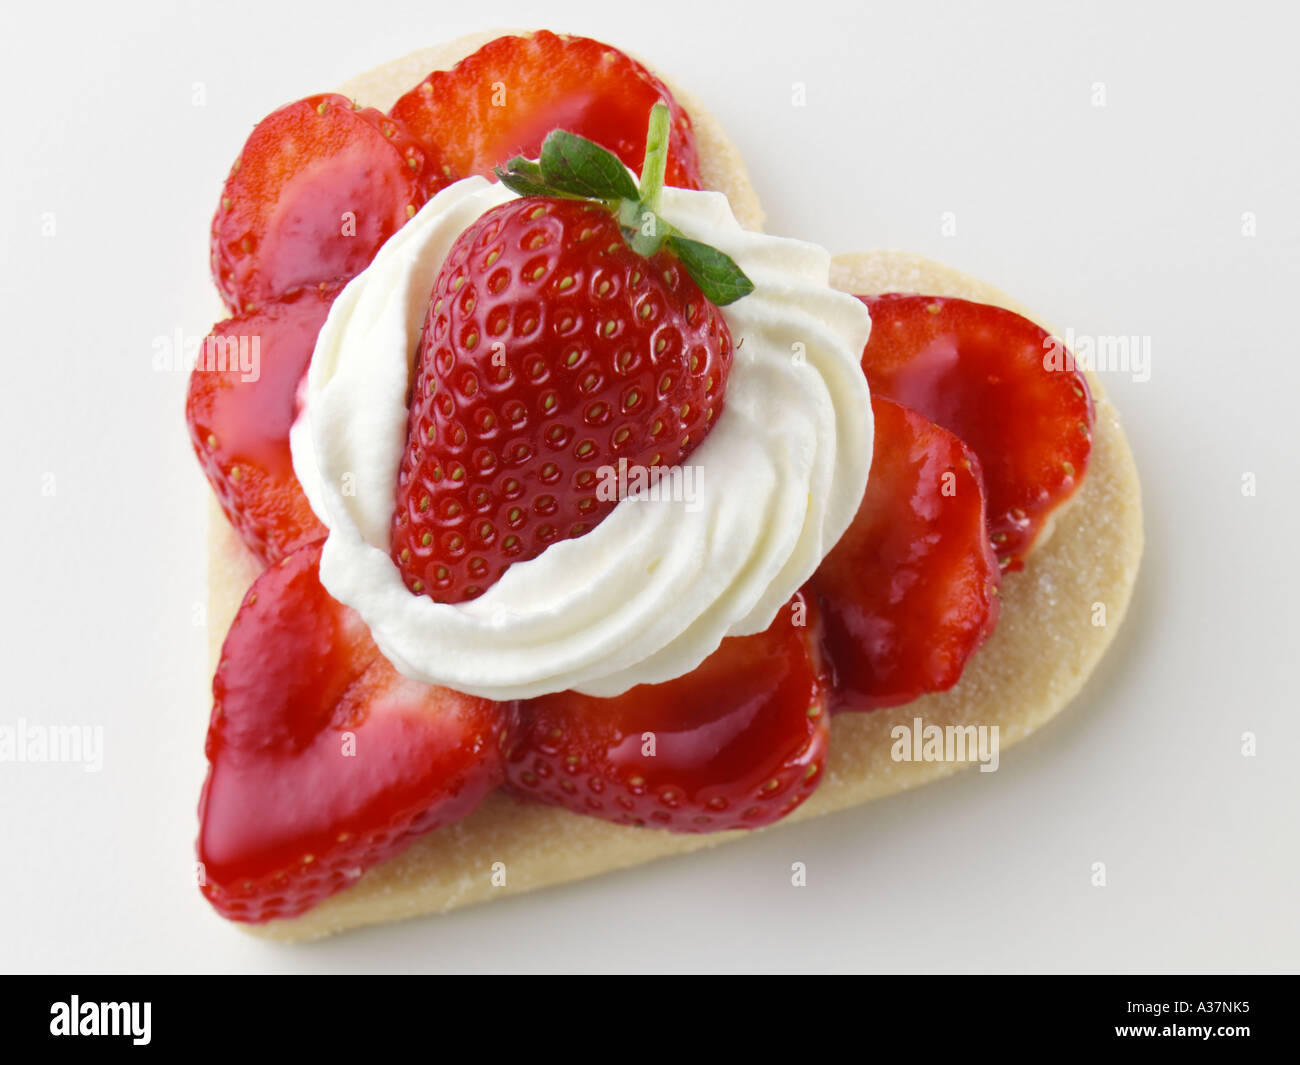 Valentino strawberry shortcake a forma di cuore Immagini Stock